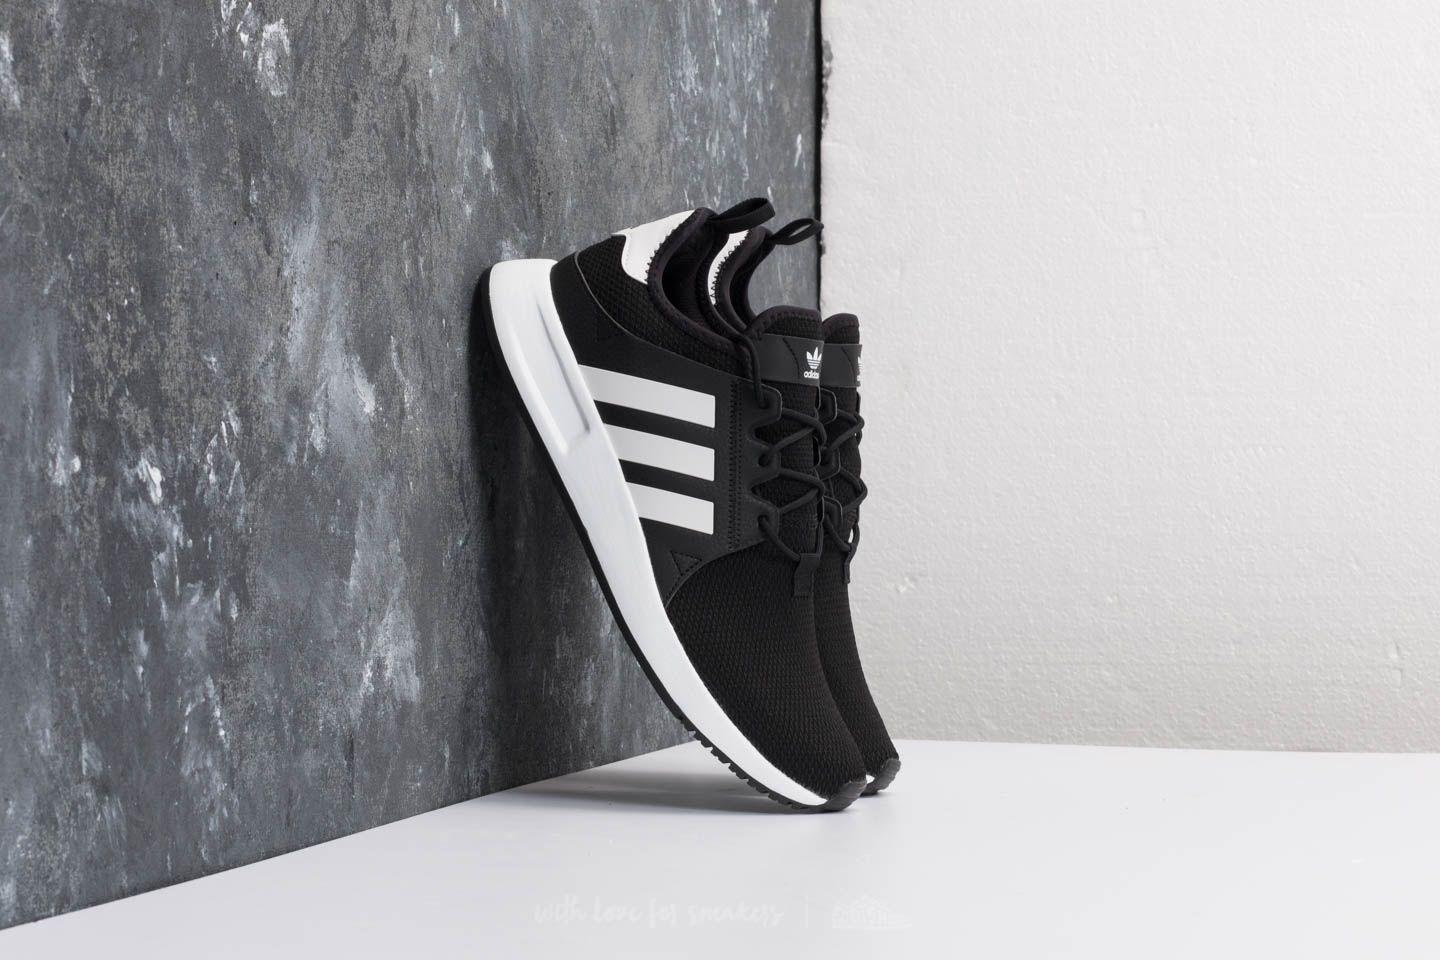 Lyst - adidas Originals Adidas X plr Core Black  Ftw White  Core ... 79c796b20